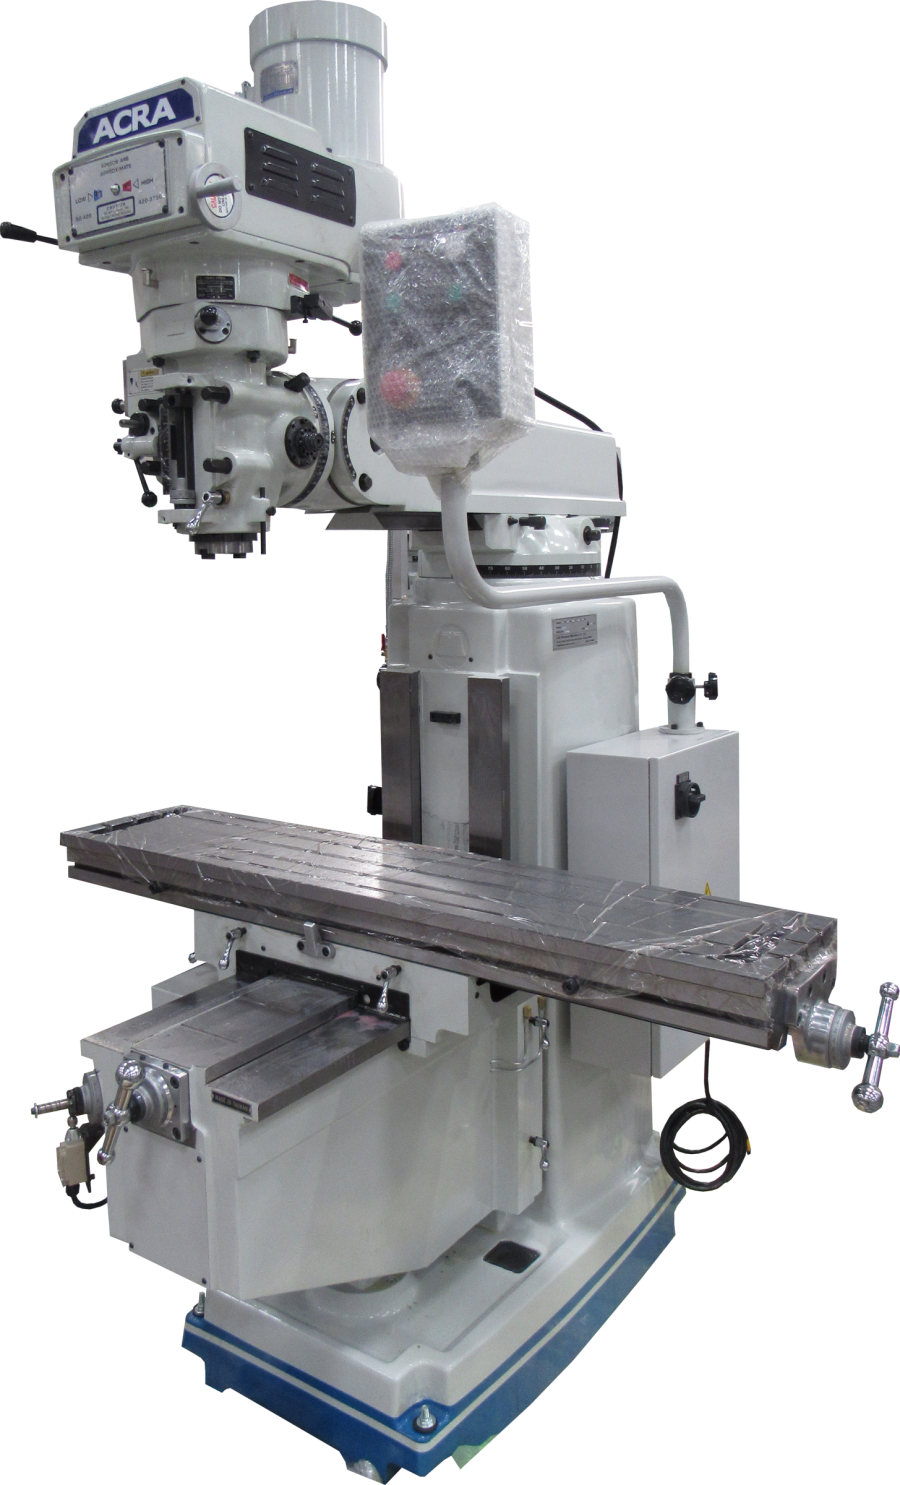 ACRA MODEL 5V VARIABLE SPEED VERTICAL MILLING MACHINE